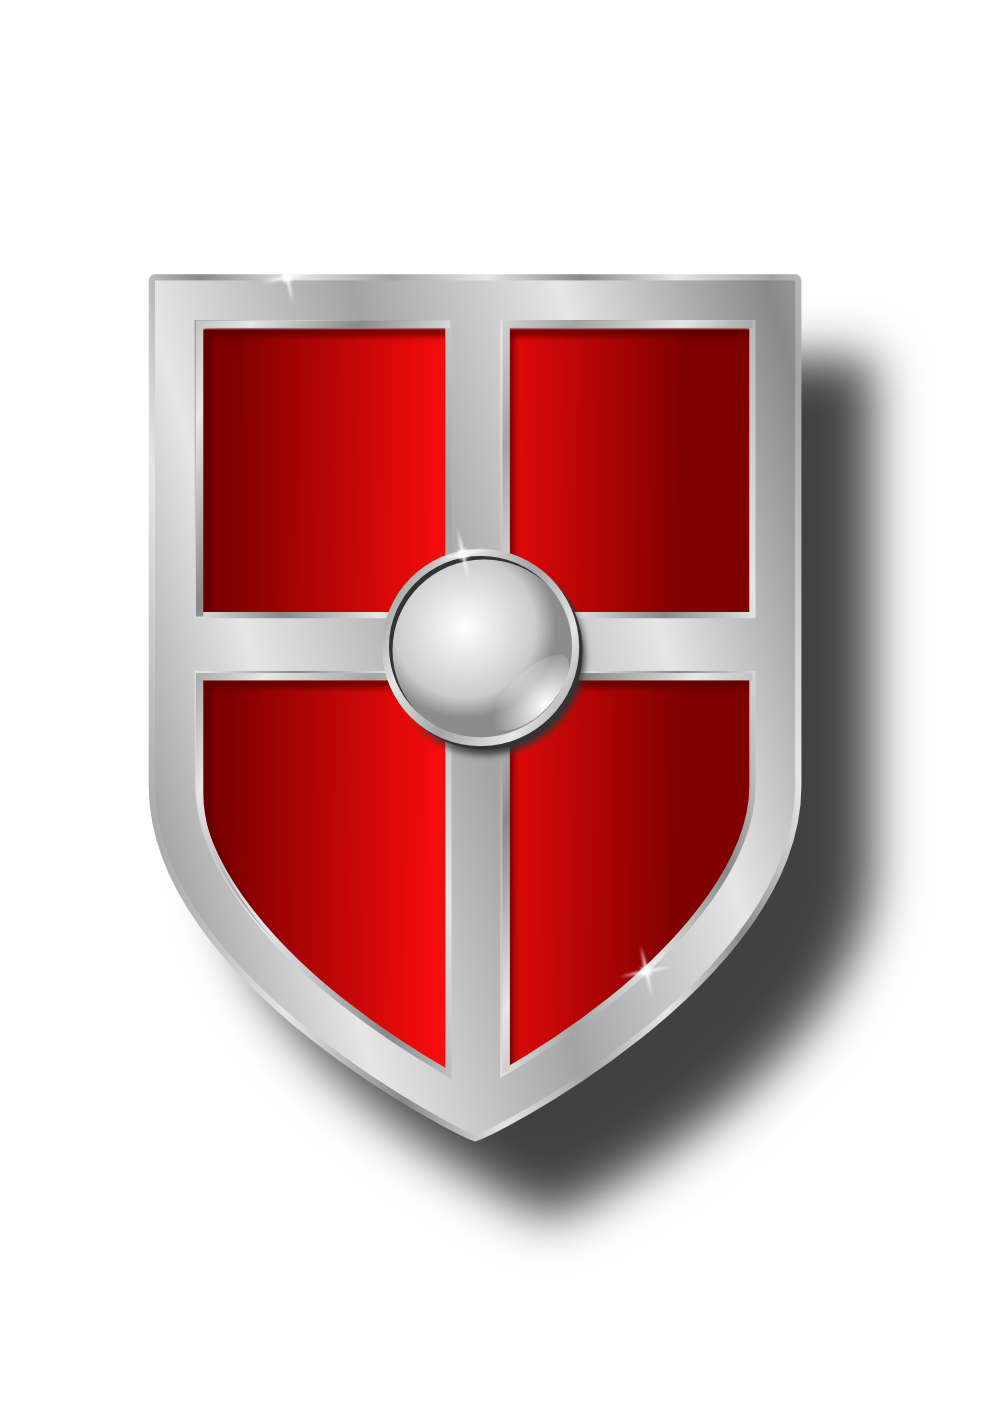 image Onlinelabels clip art weapon. Knight shield clipart